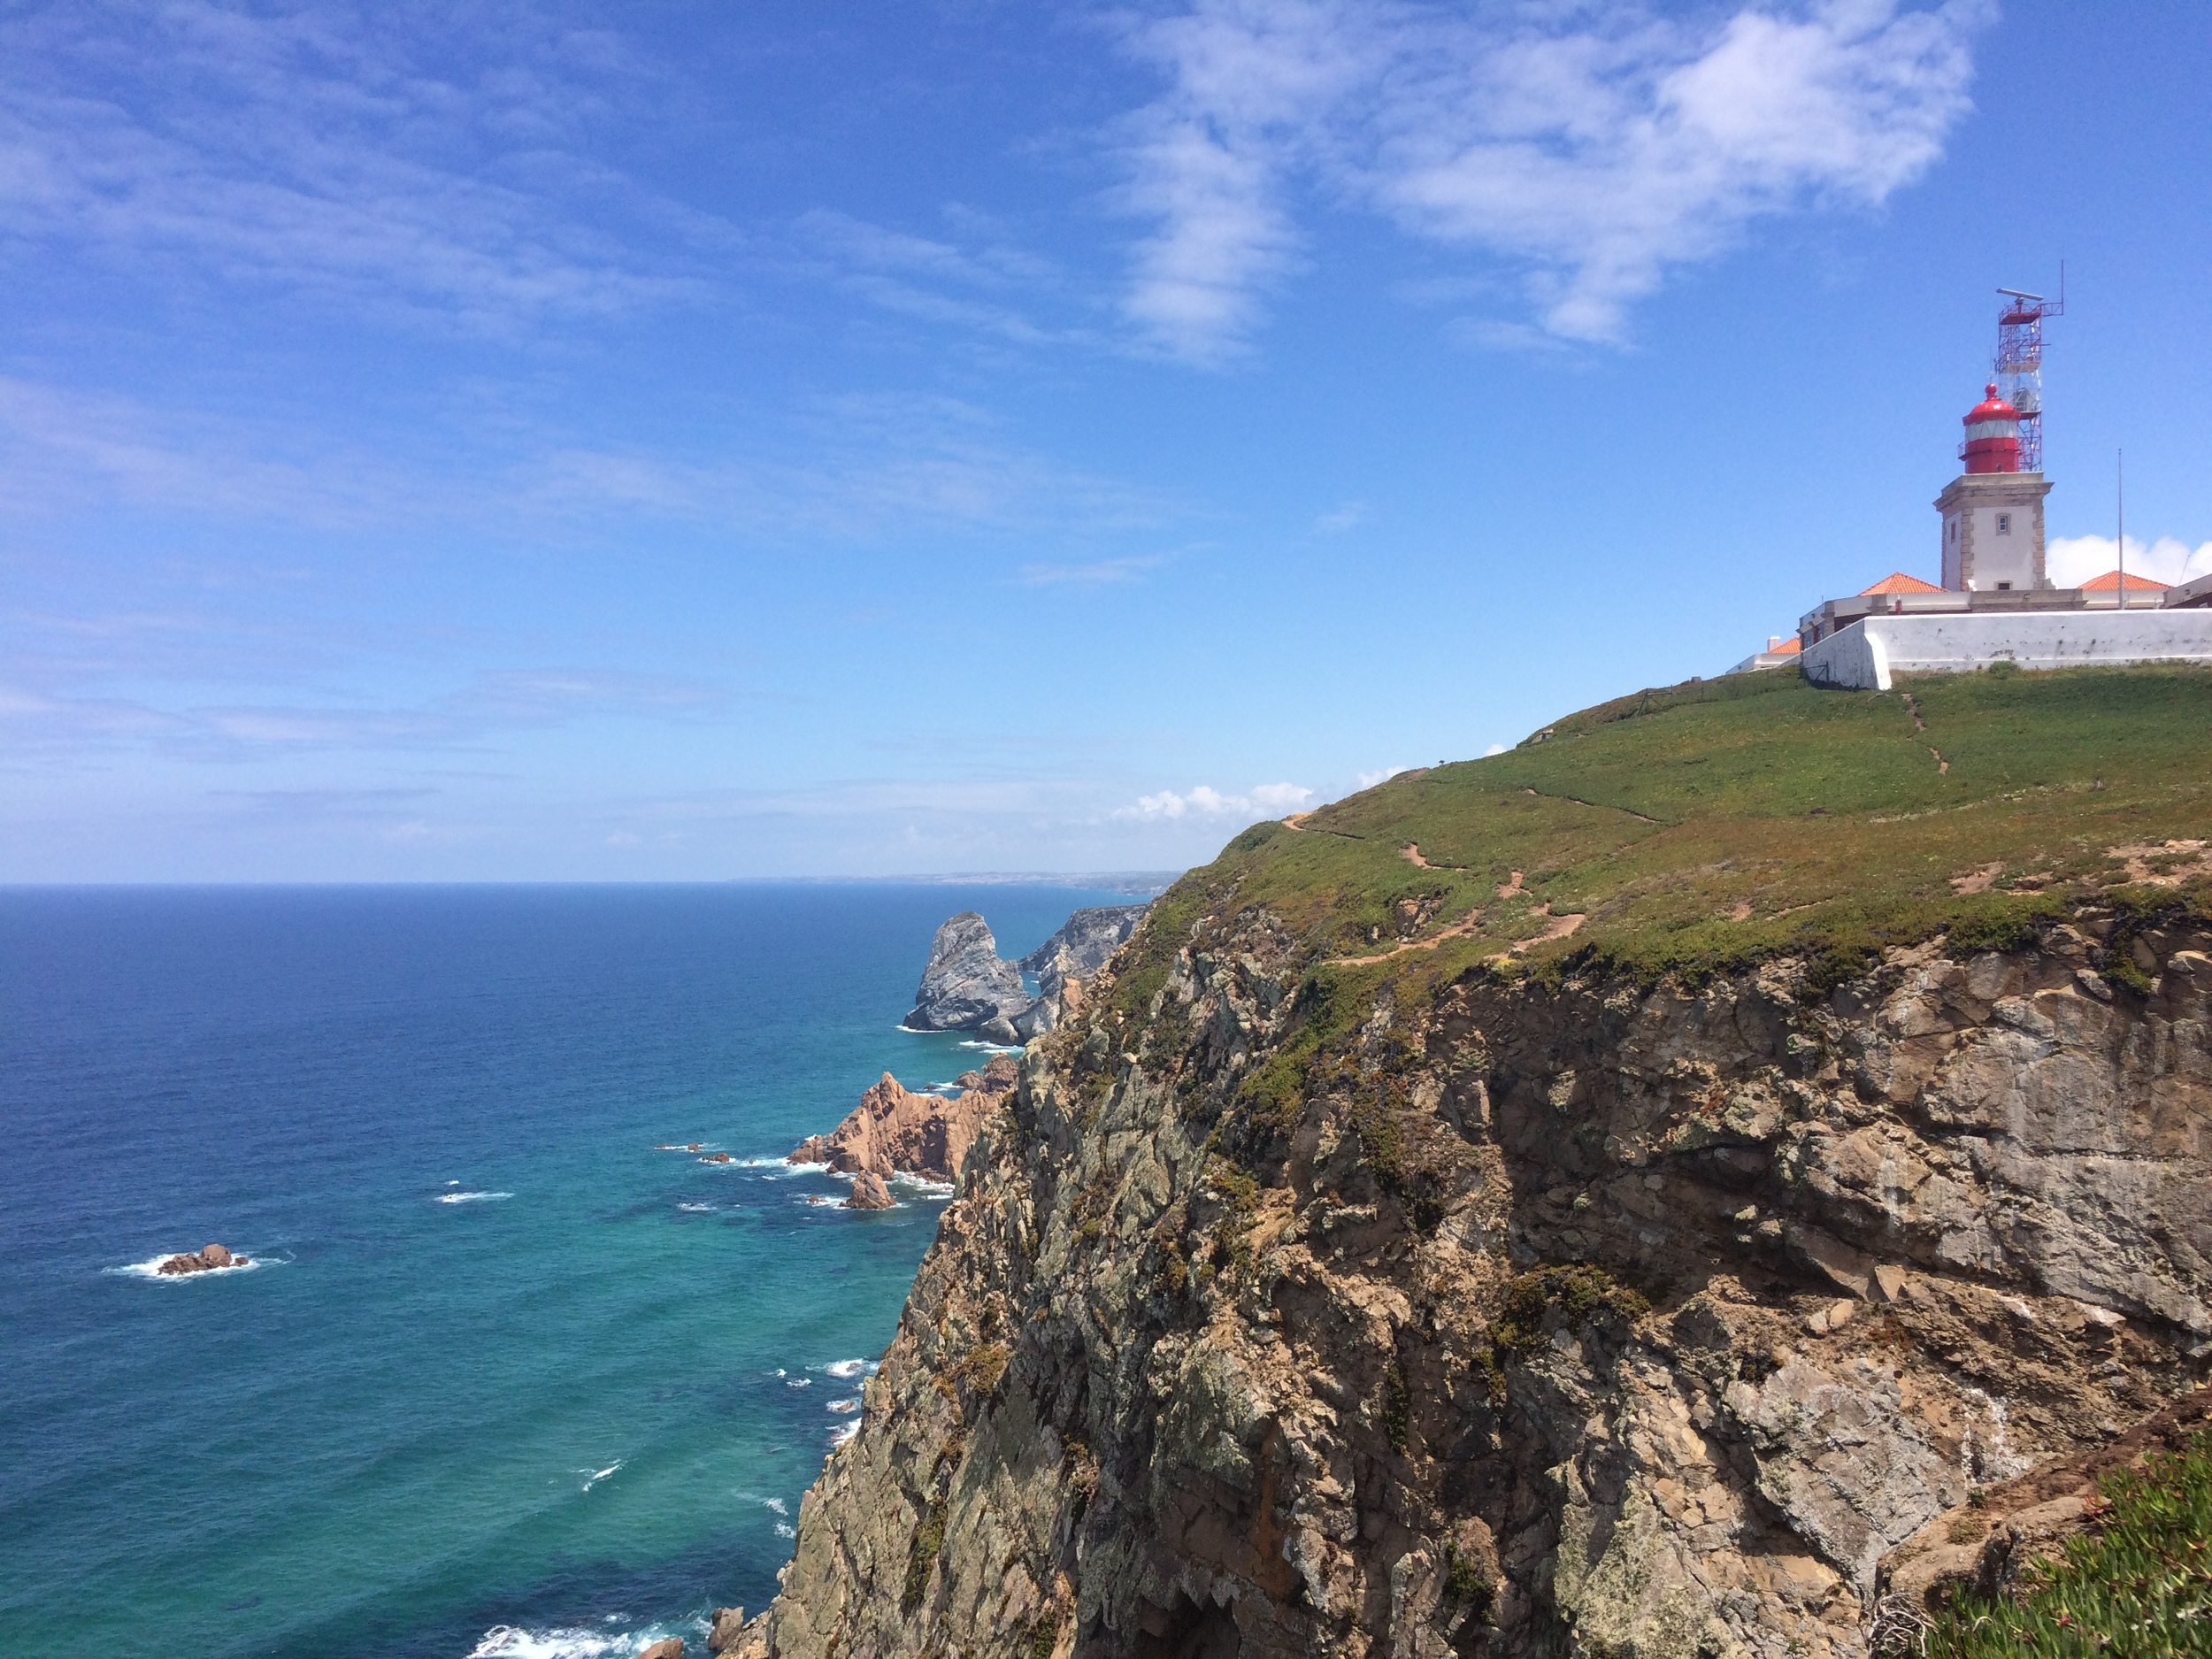 Cabo da Roca, western most point of Europe